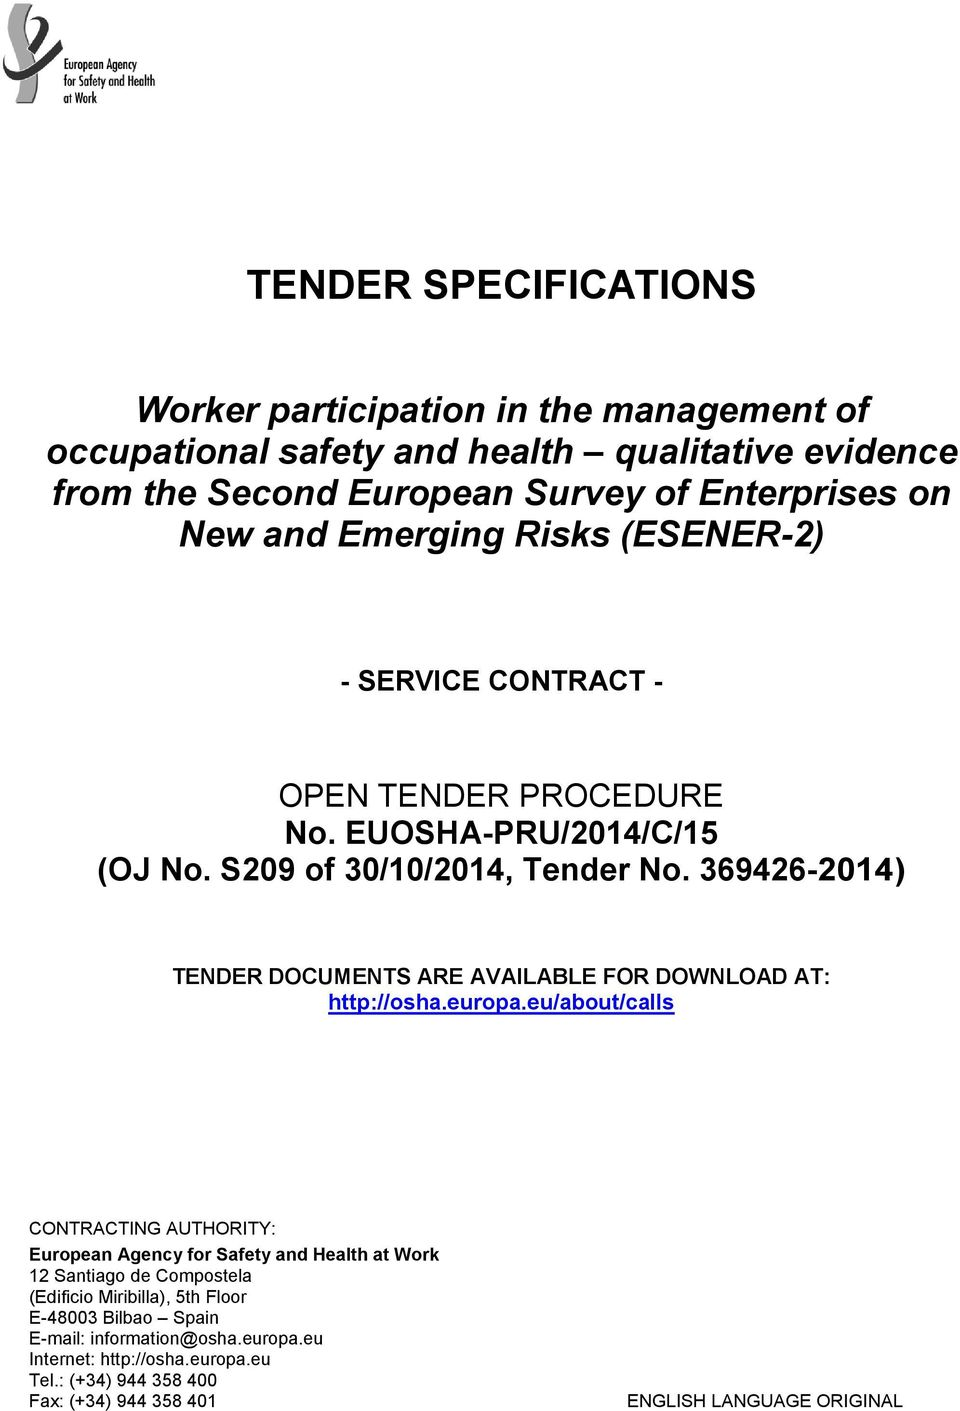 369426-2014) TENDER DOCUMENTS ARE AVAILABLE FOR DOWNLOAD AT: http://osha.europa.